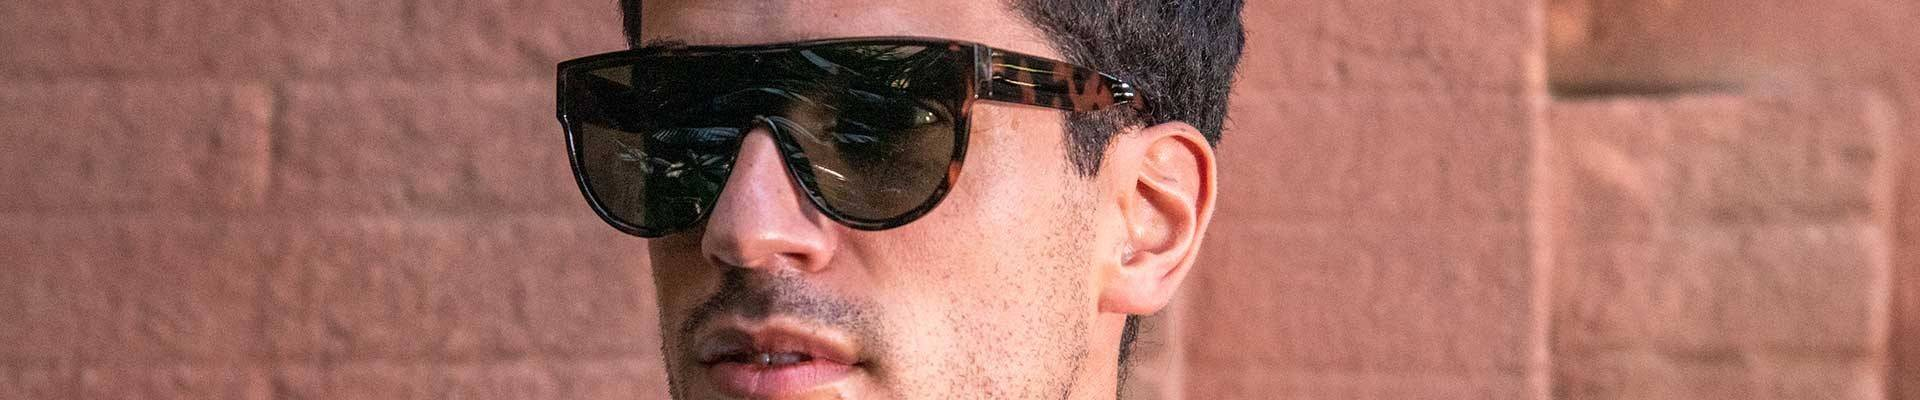 Tom, sporty style sunglasses for him.